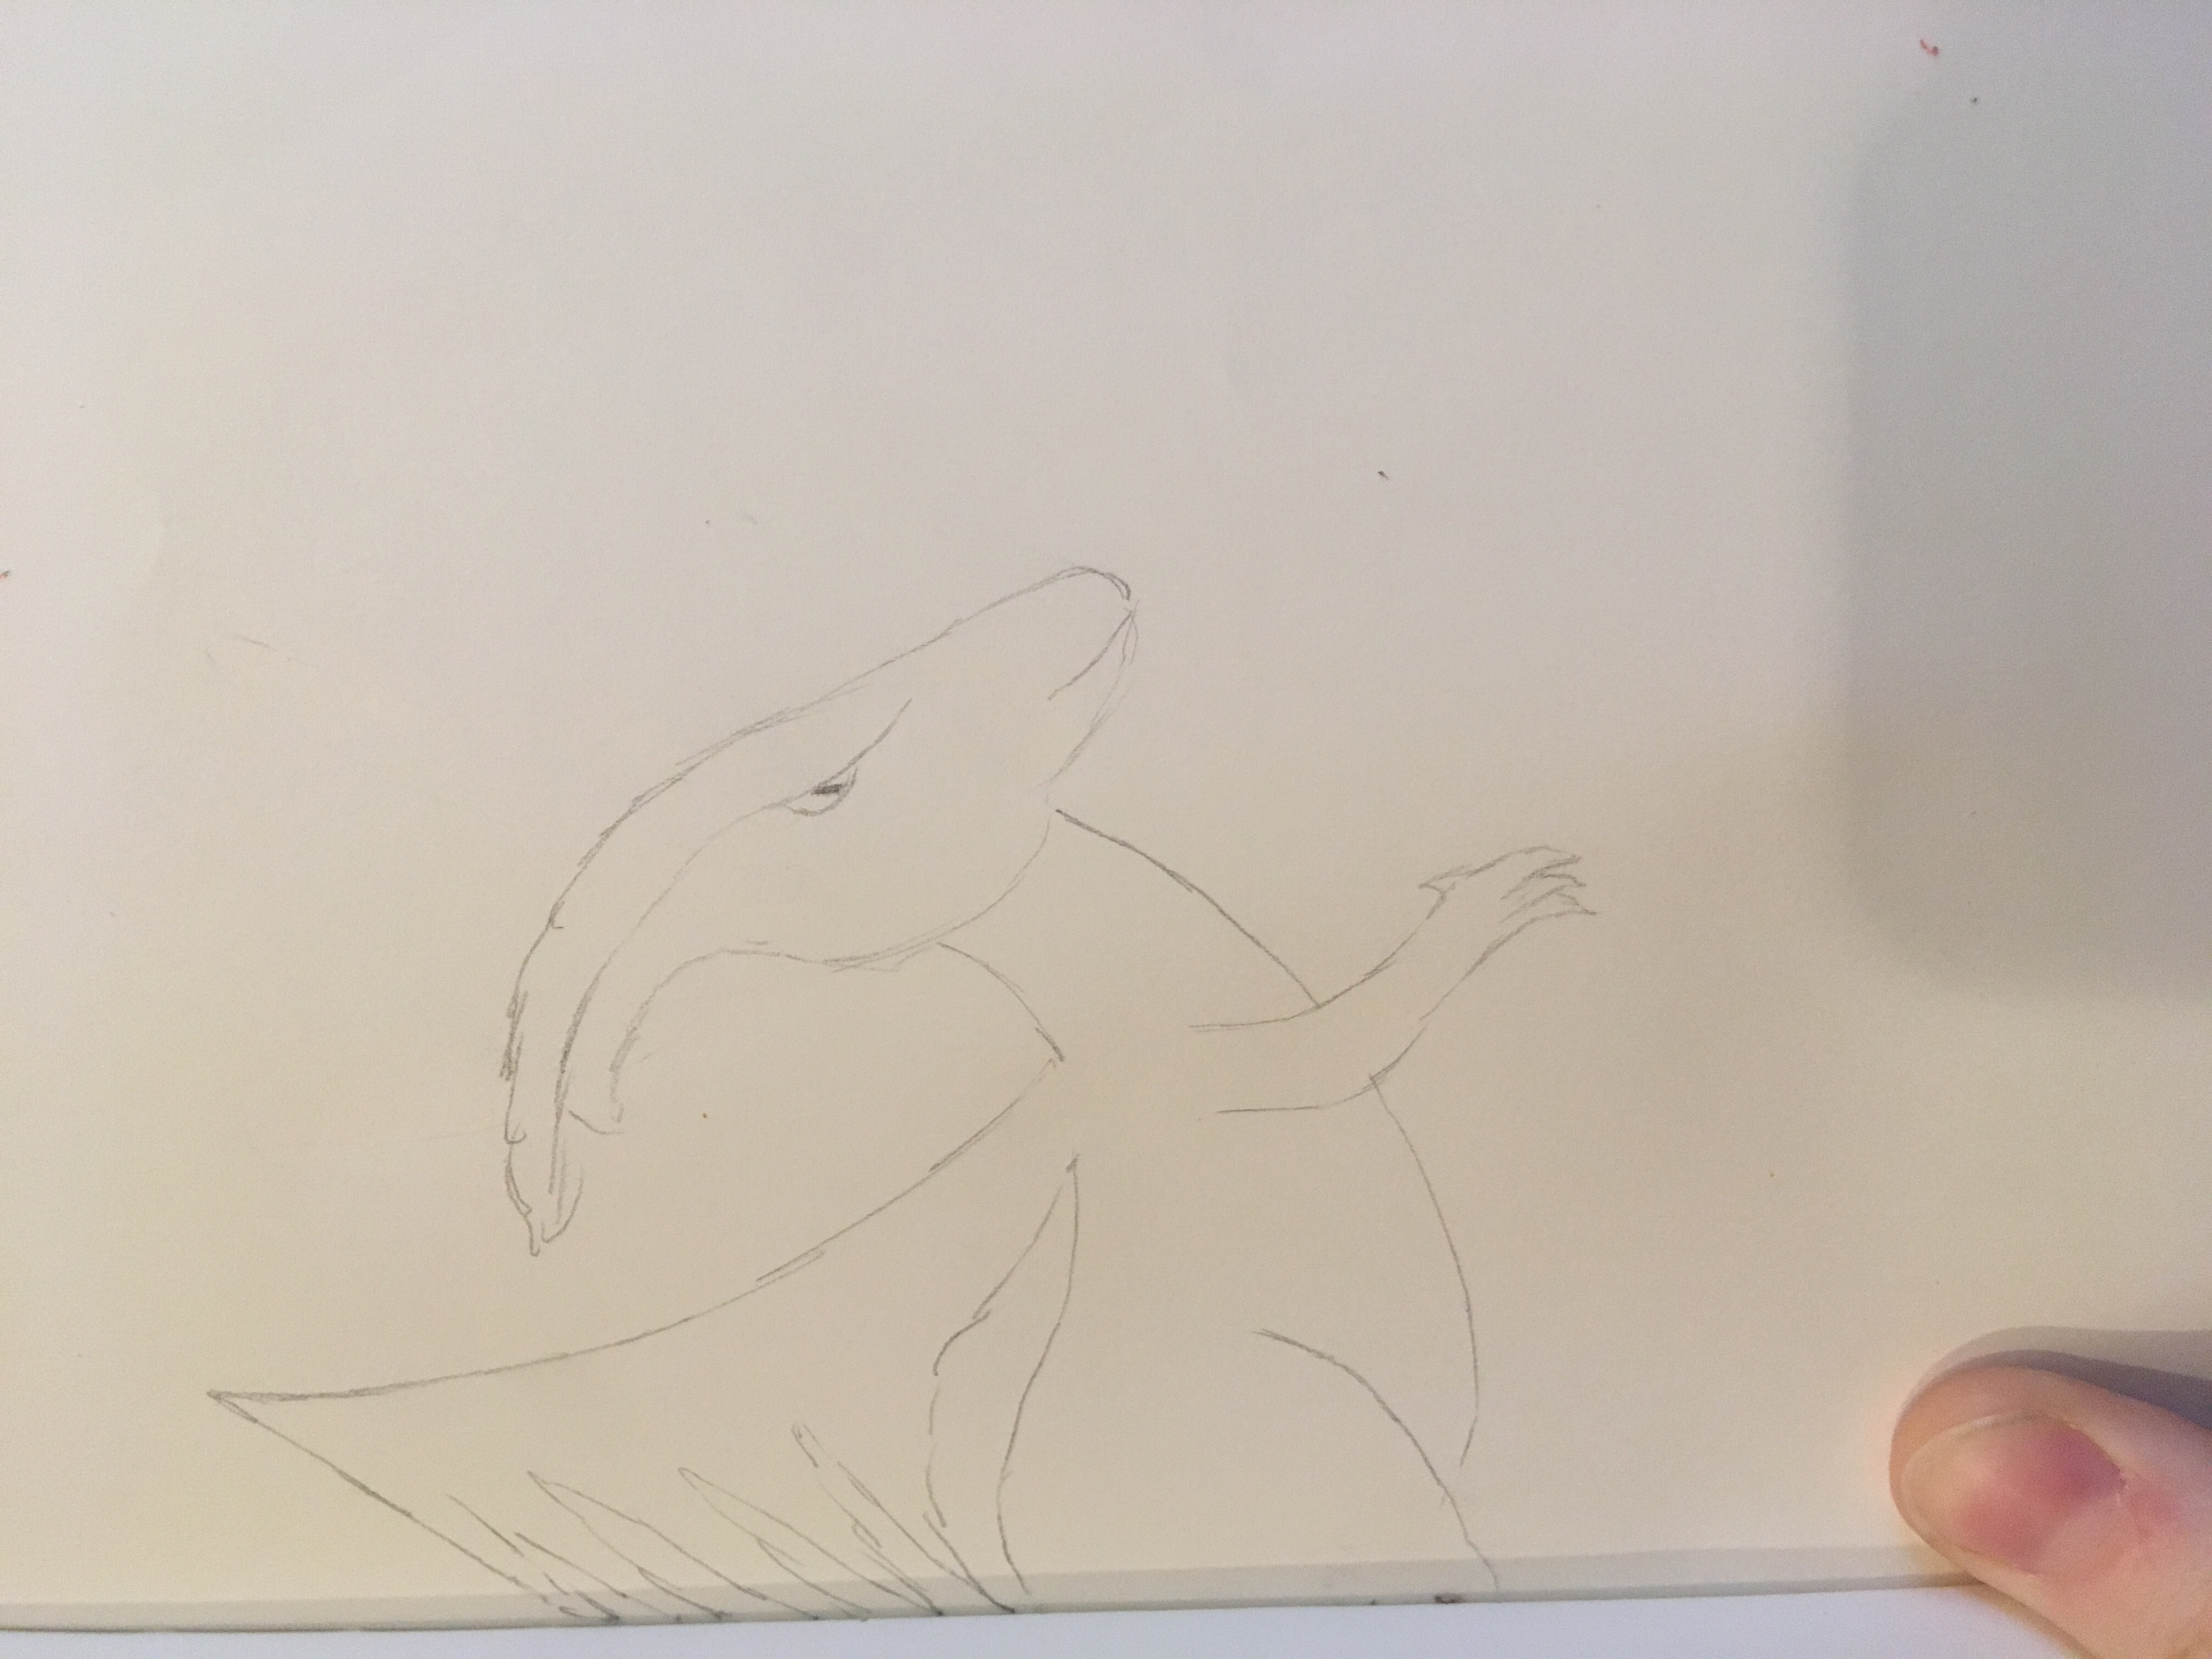 Duckbill dinosaur in pencil on the book I am holding it